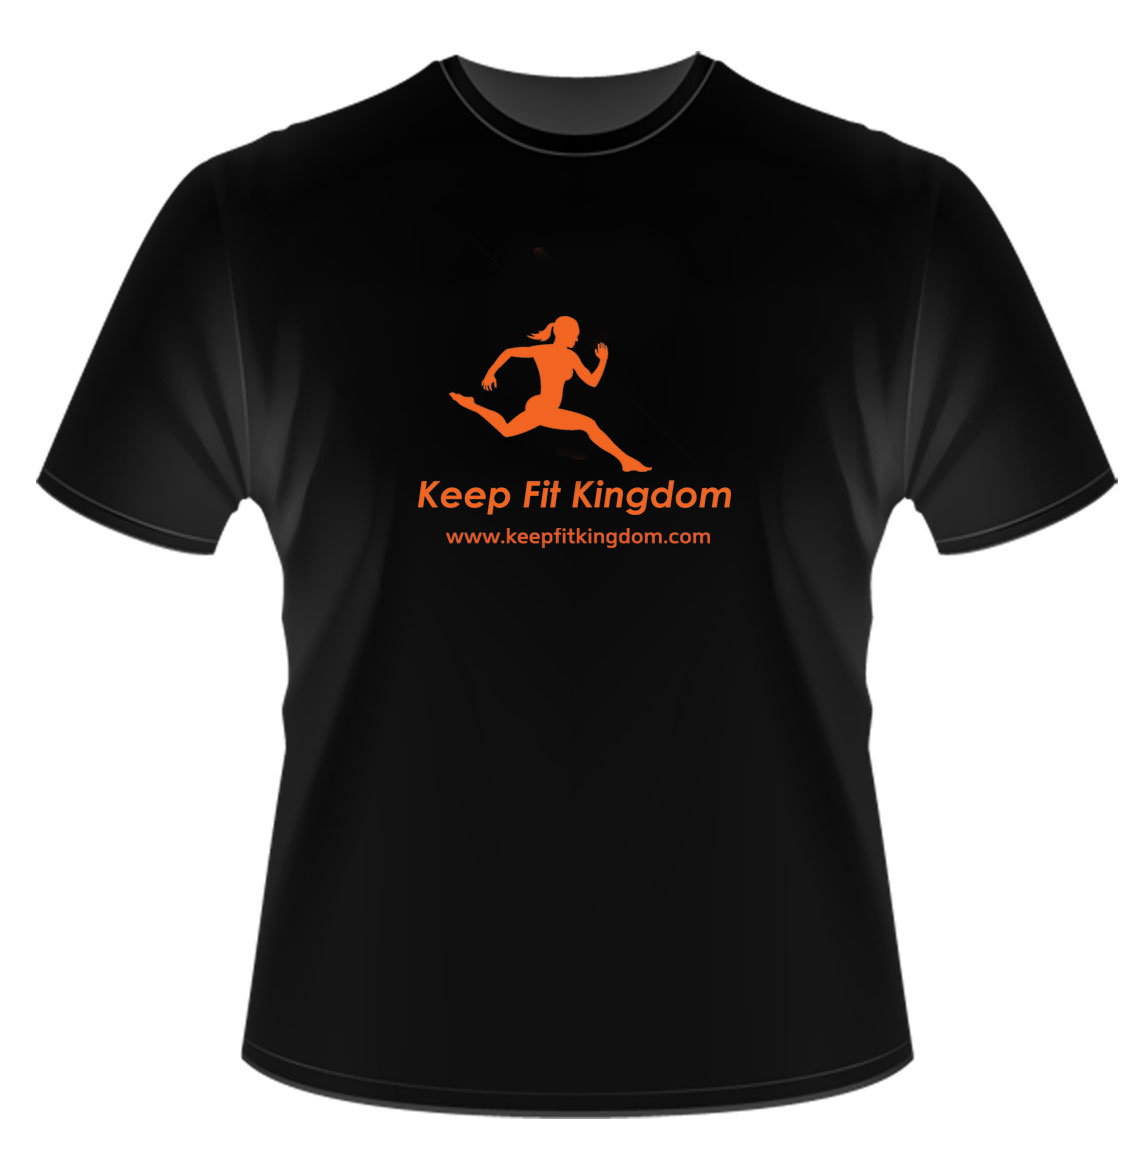 Keep Fit Kingdom T-Shirt - Female